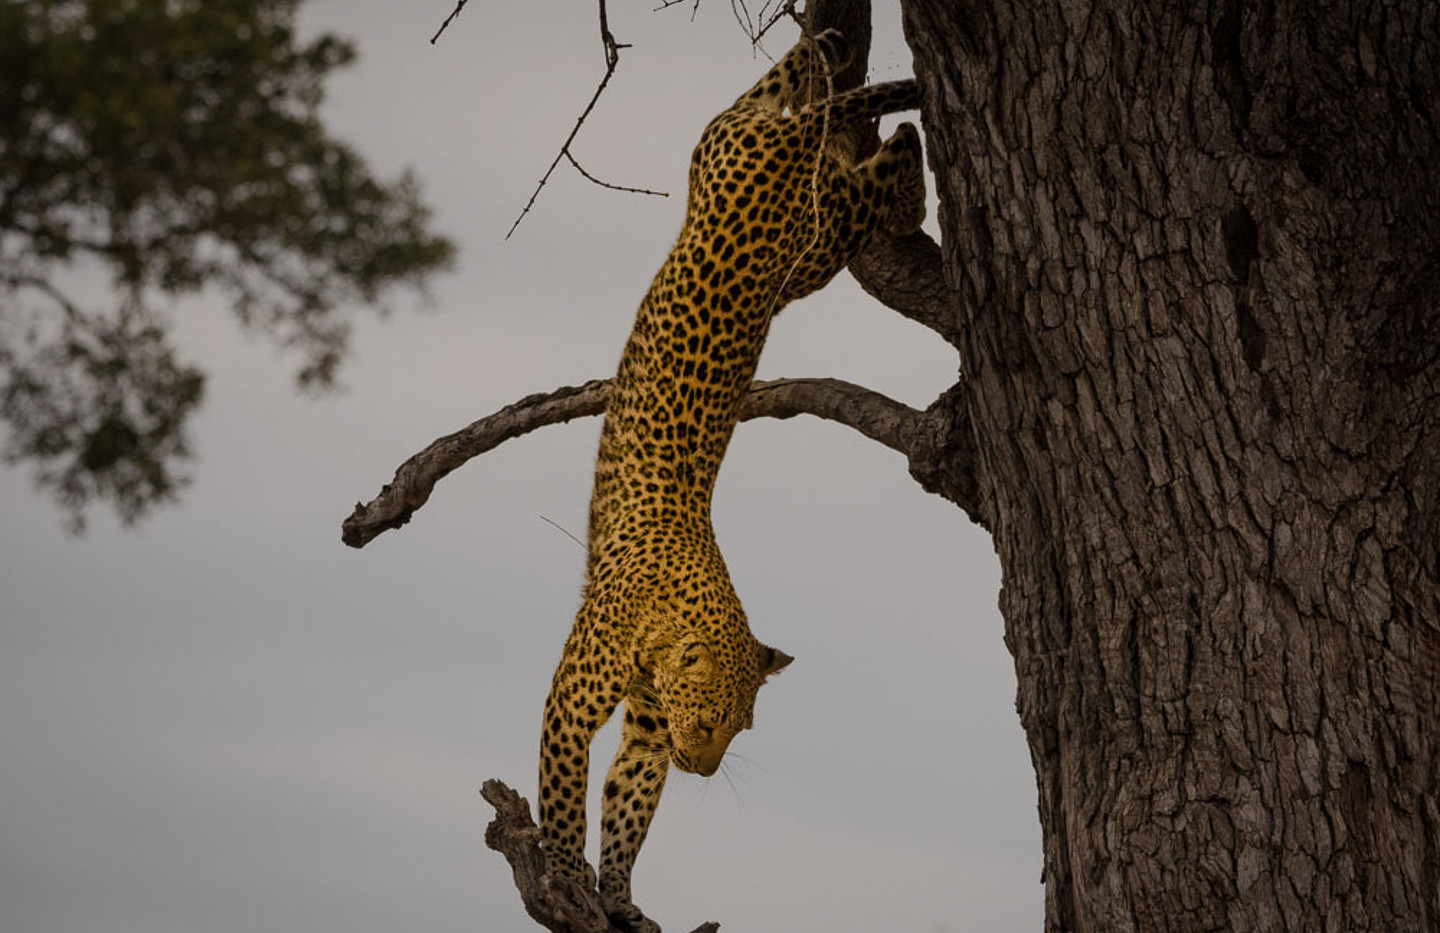 Leopard jumping out of tree